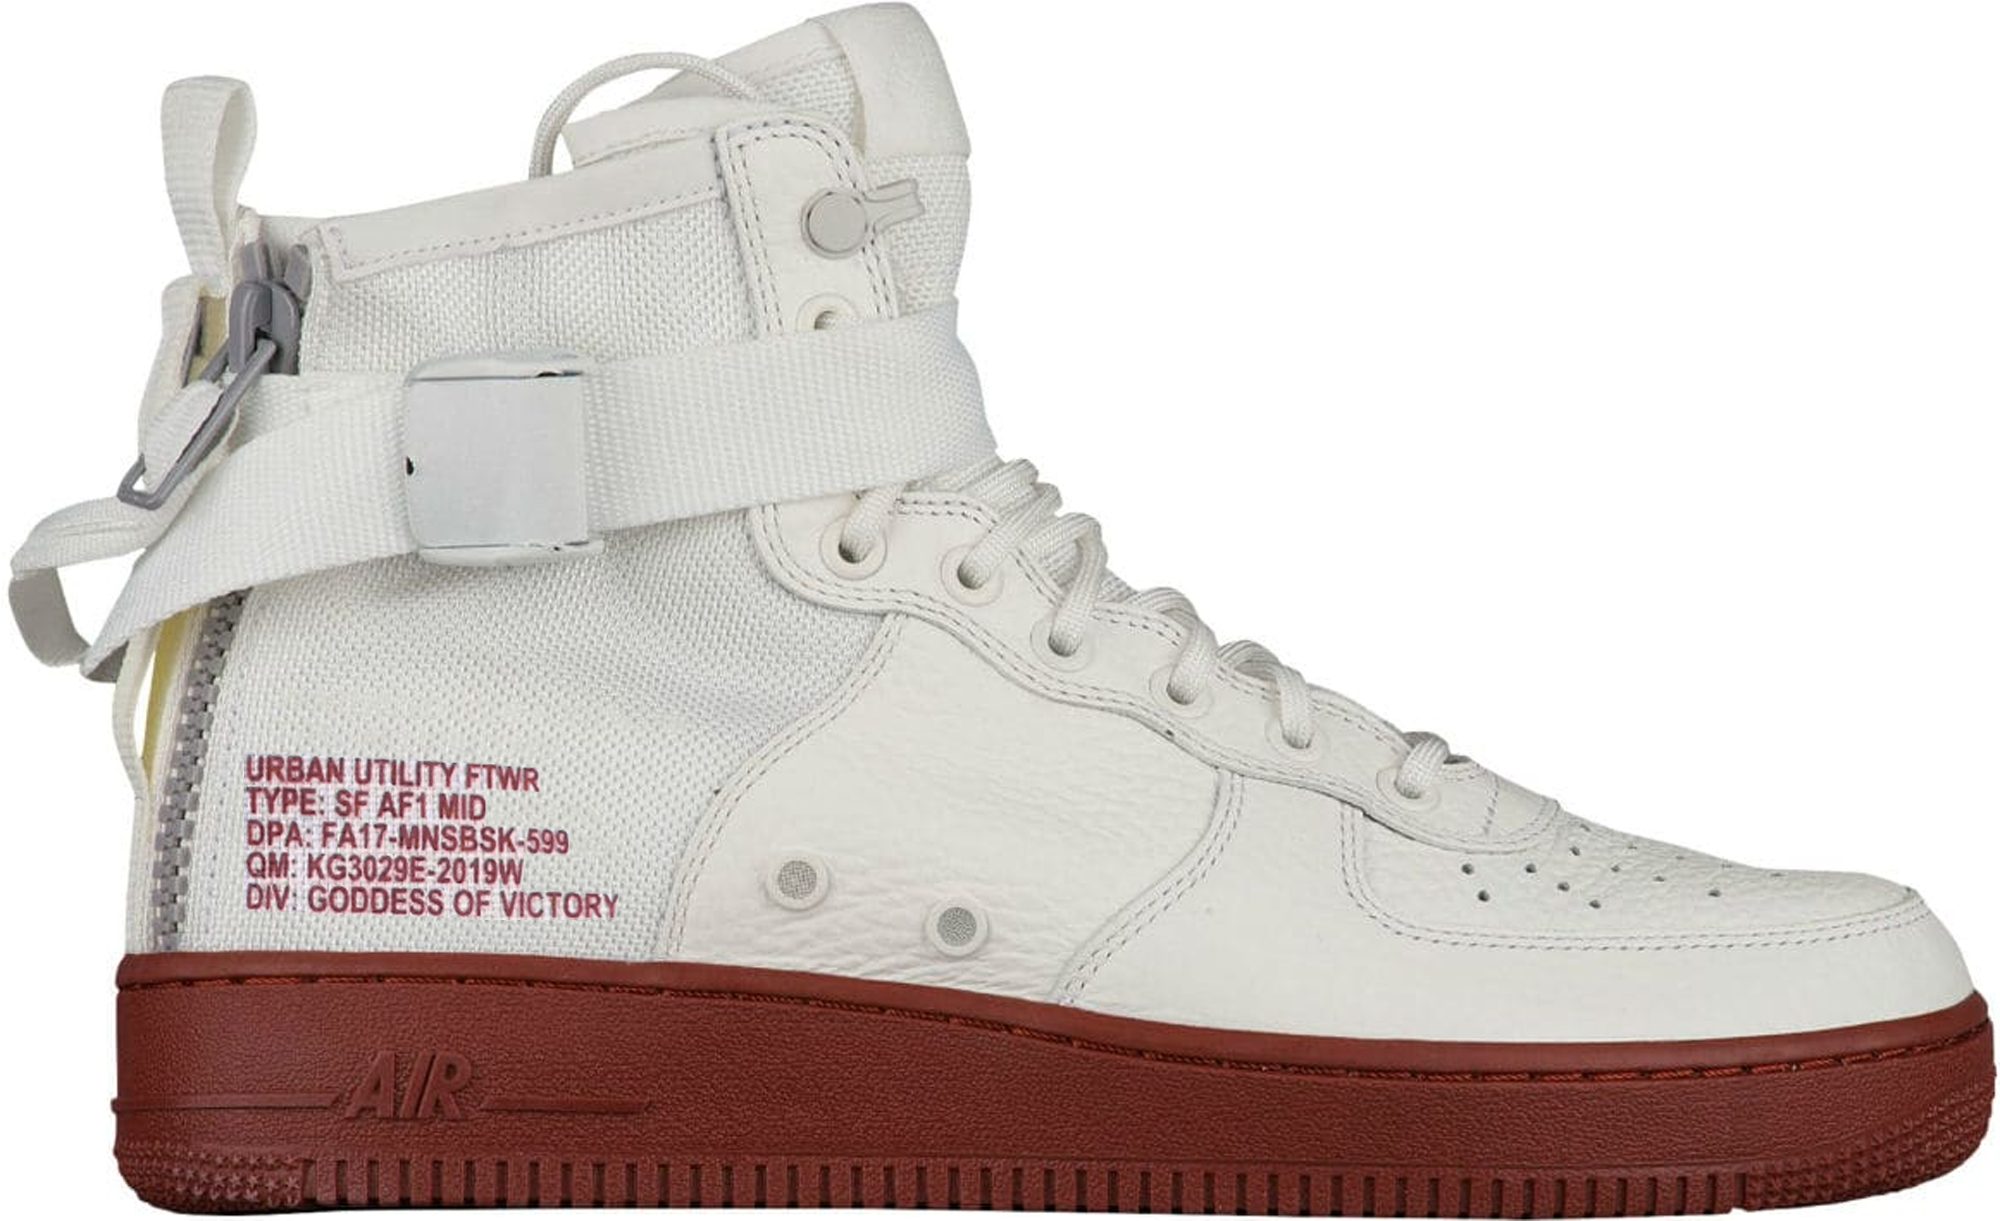 SF Air Force 1 Mid Ivory Mars Stone